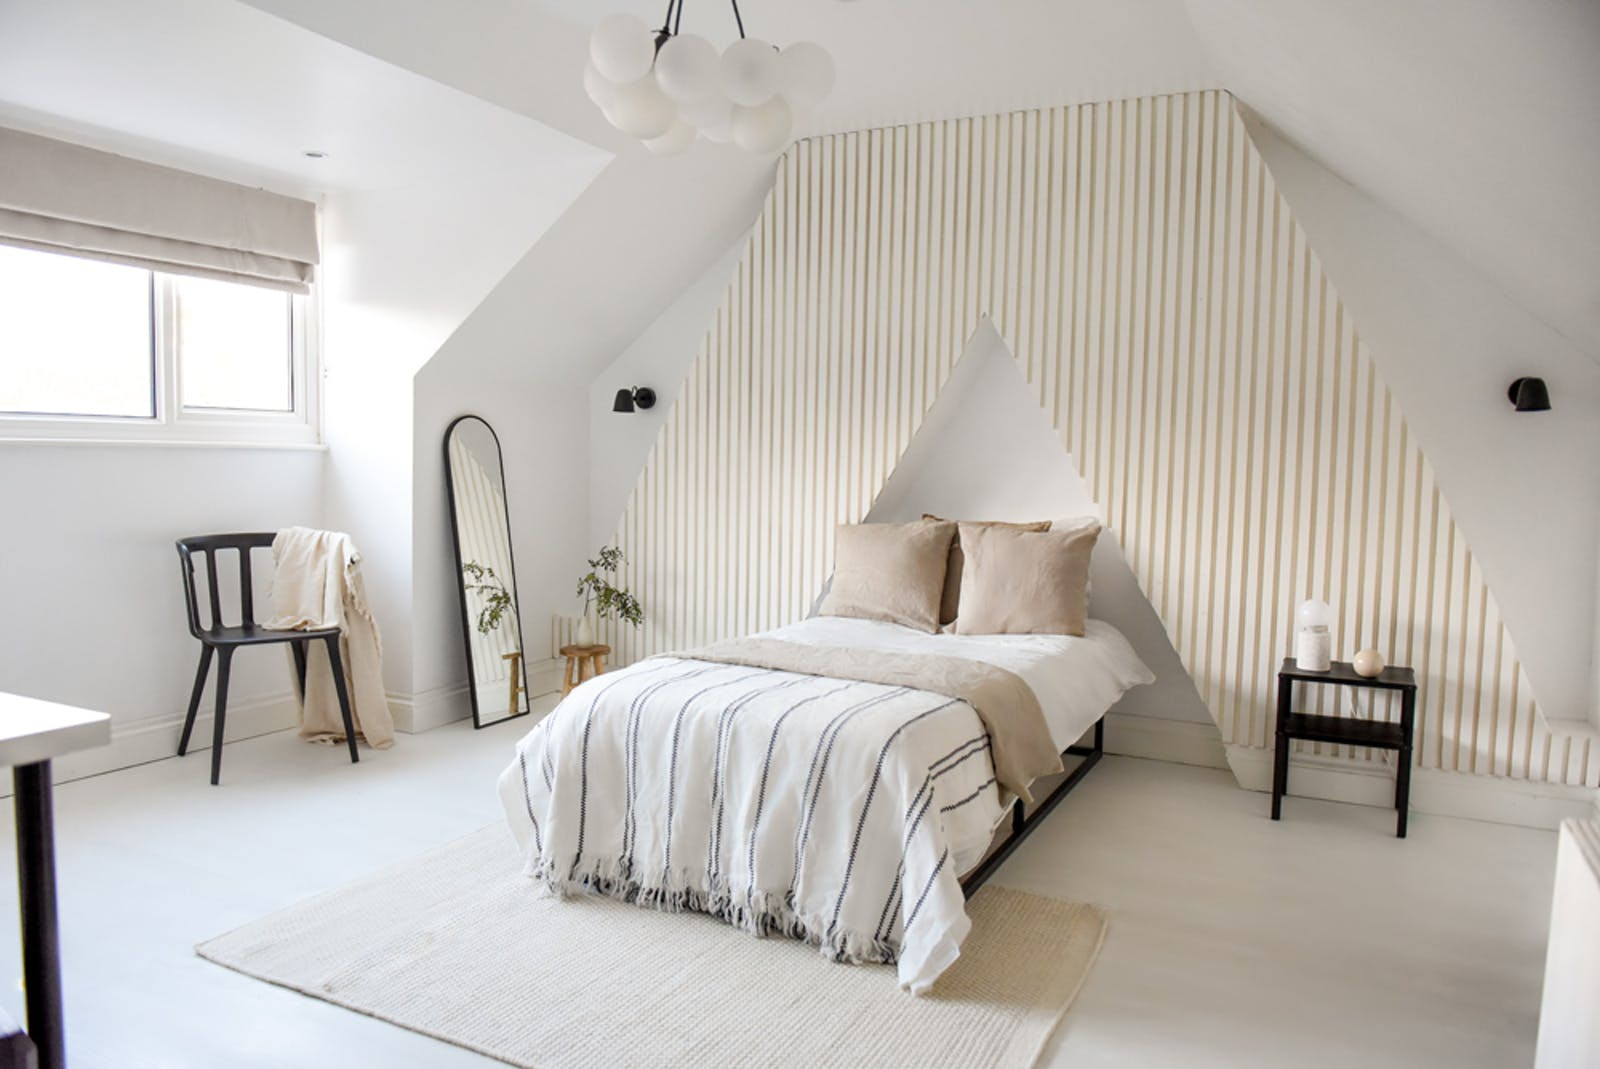 Loft bedroom with Lick White 03 wall panelling behind the bed